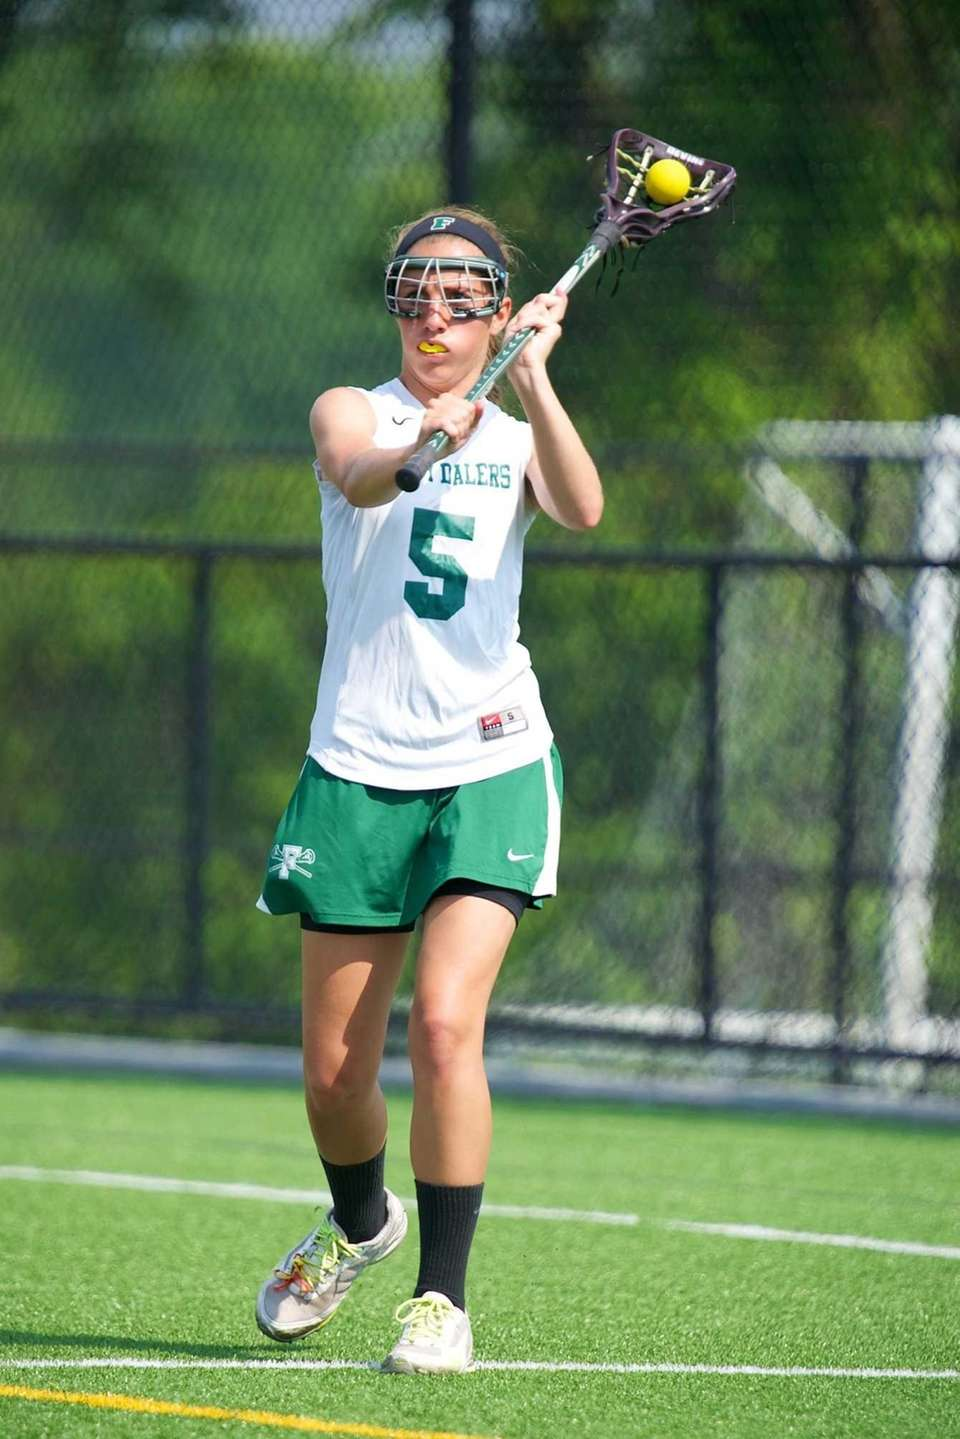 Farmingdale attacker Paige Devine handles the ball behind